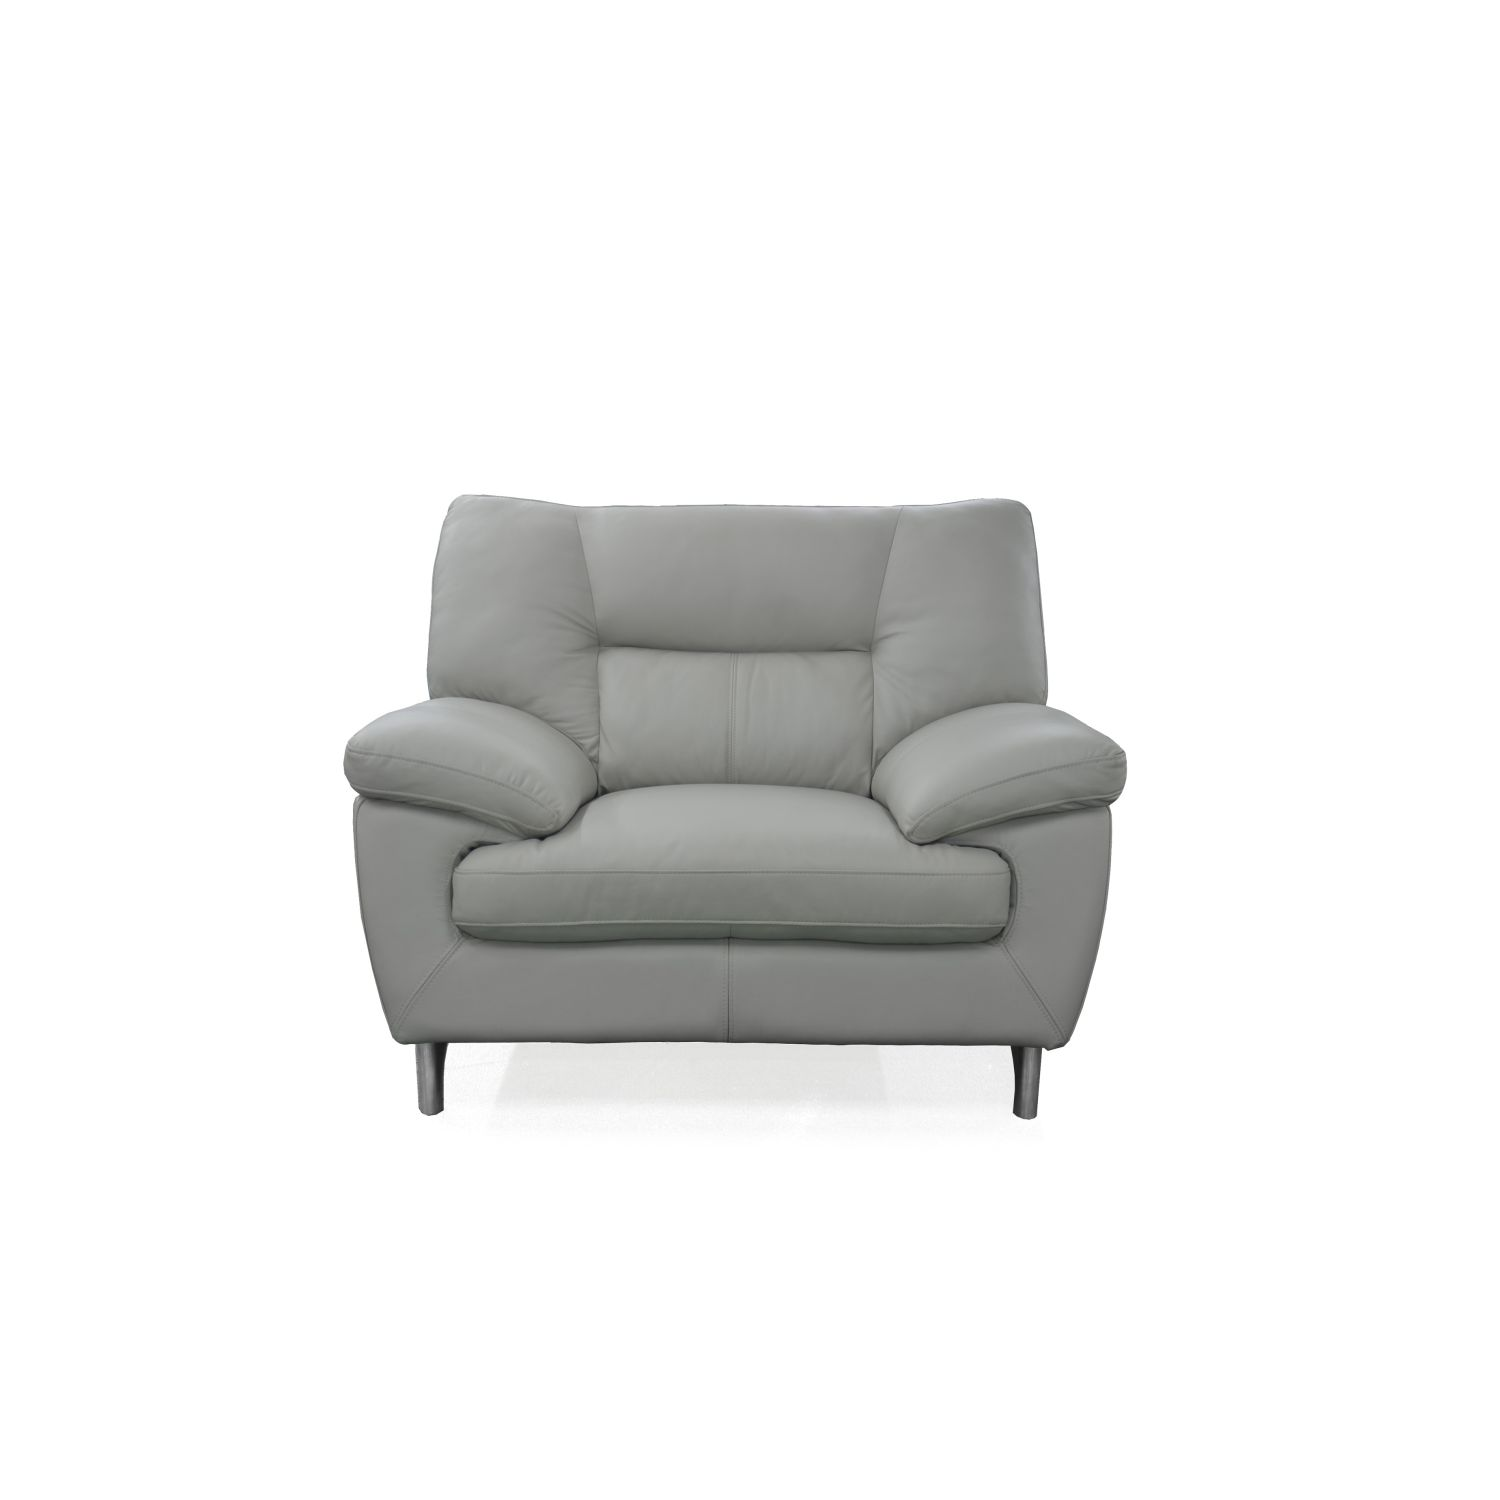 Image of Casa Celia Leather Armchair